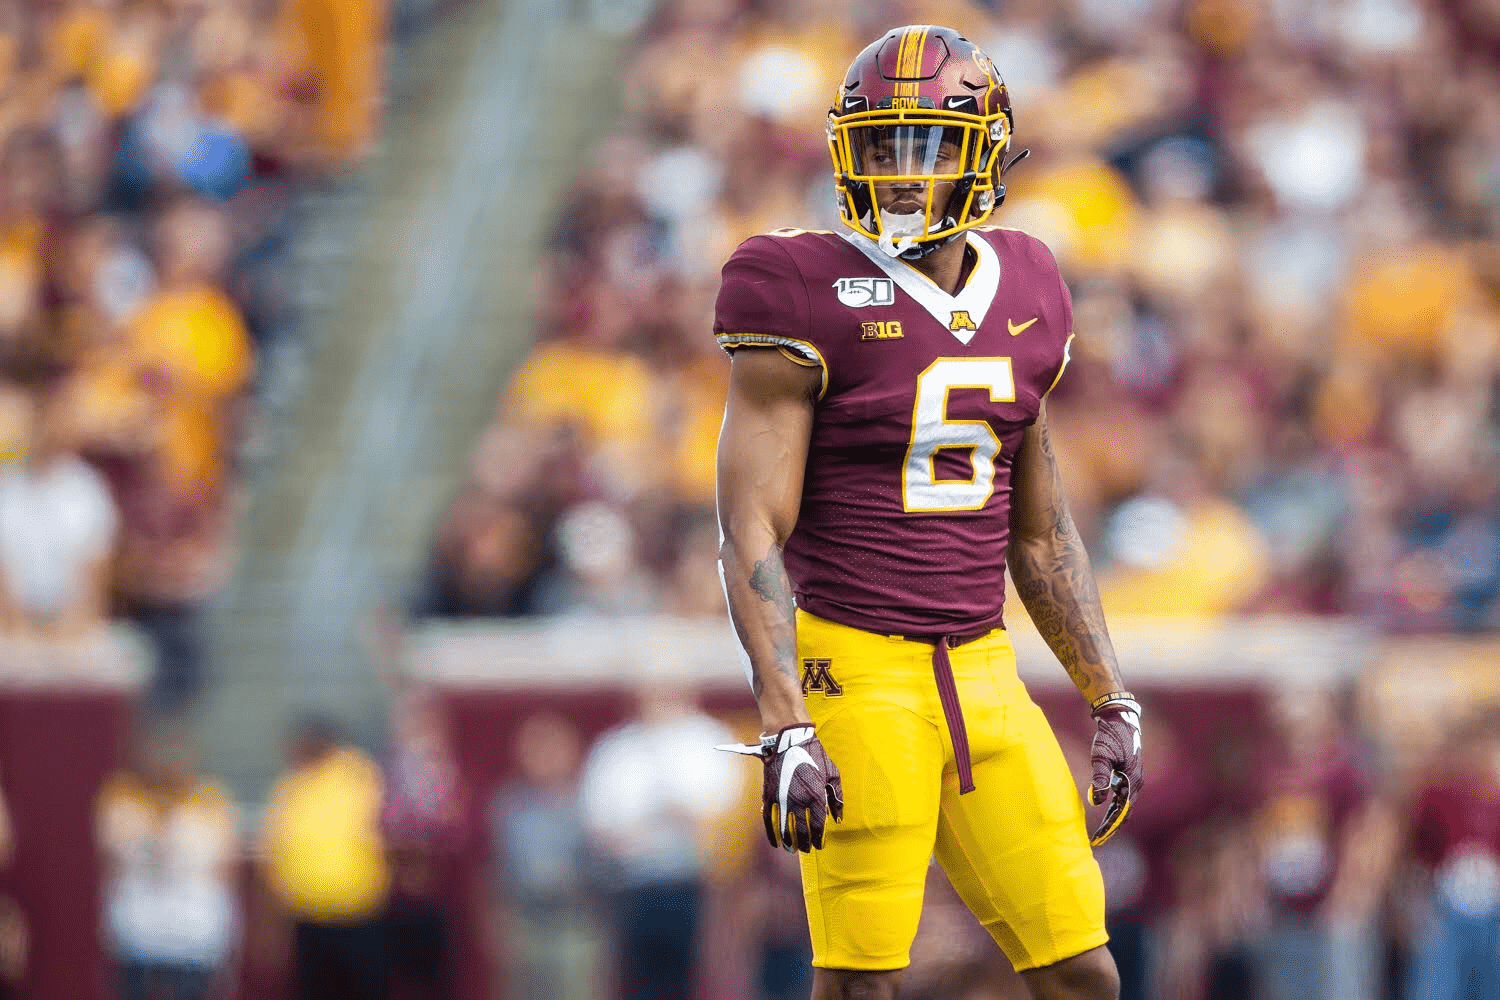 2020 NFL Draft: Chris Williamson remains focused on the controllables